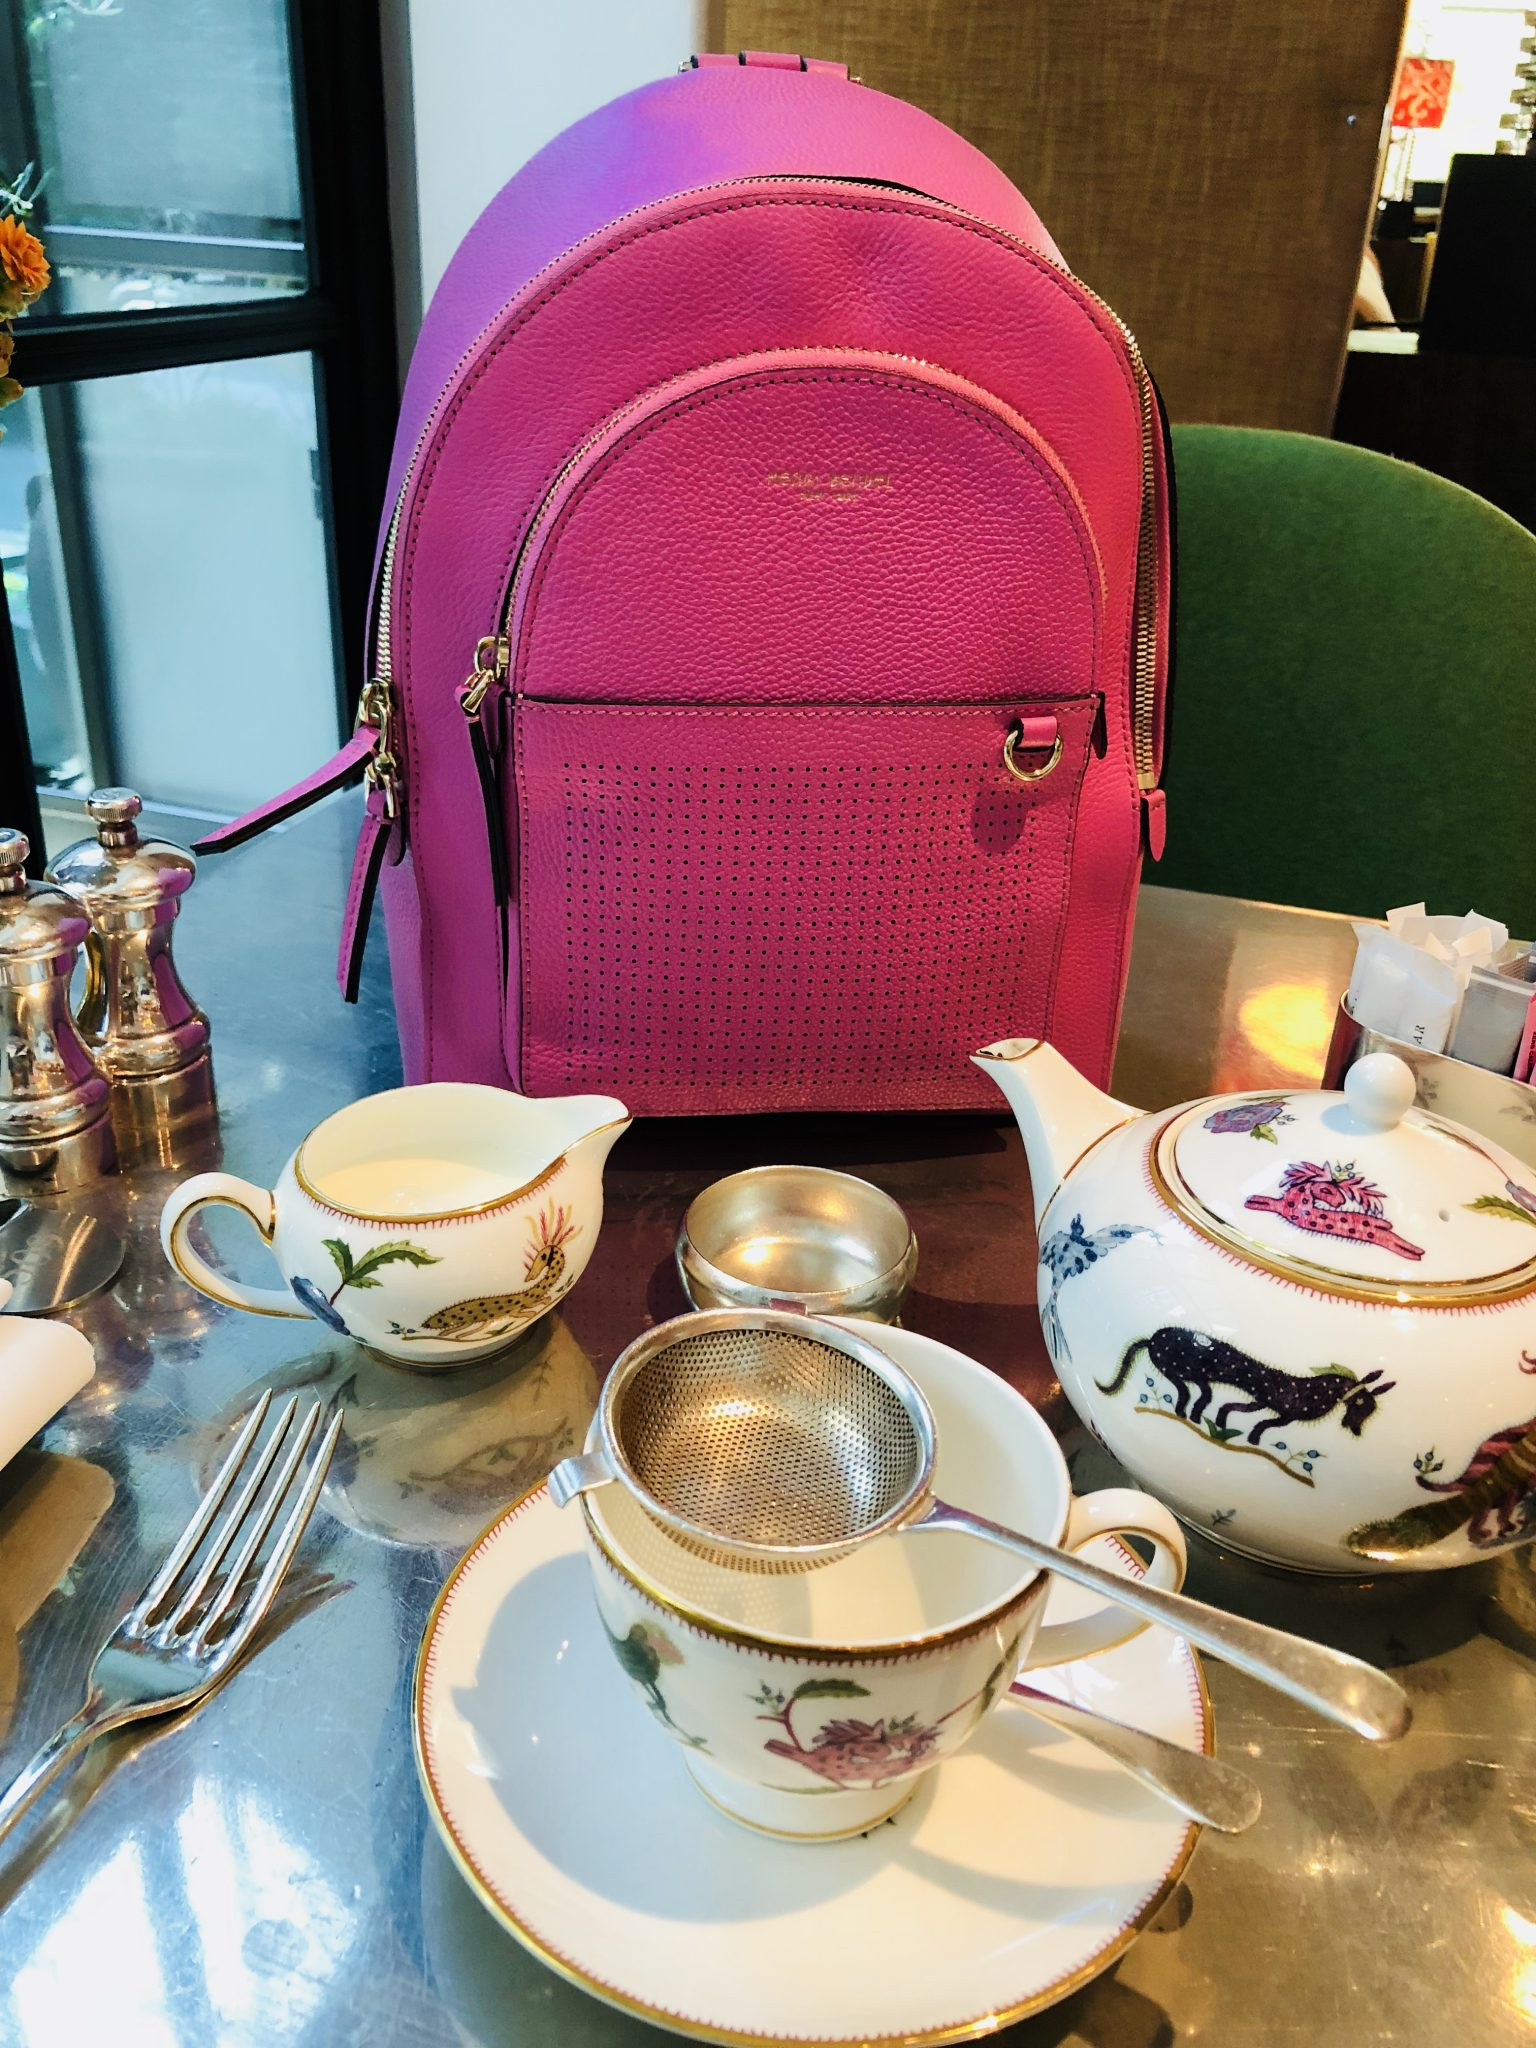 High Tea With My Henri Bendel Influencer Backpack